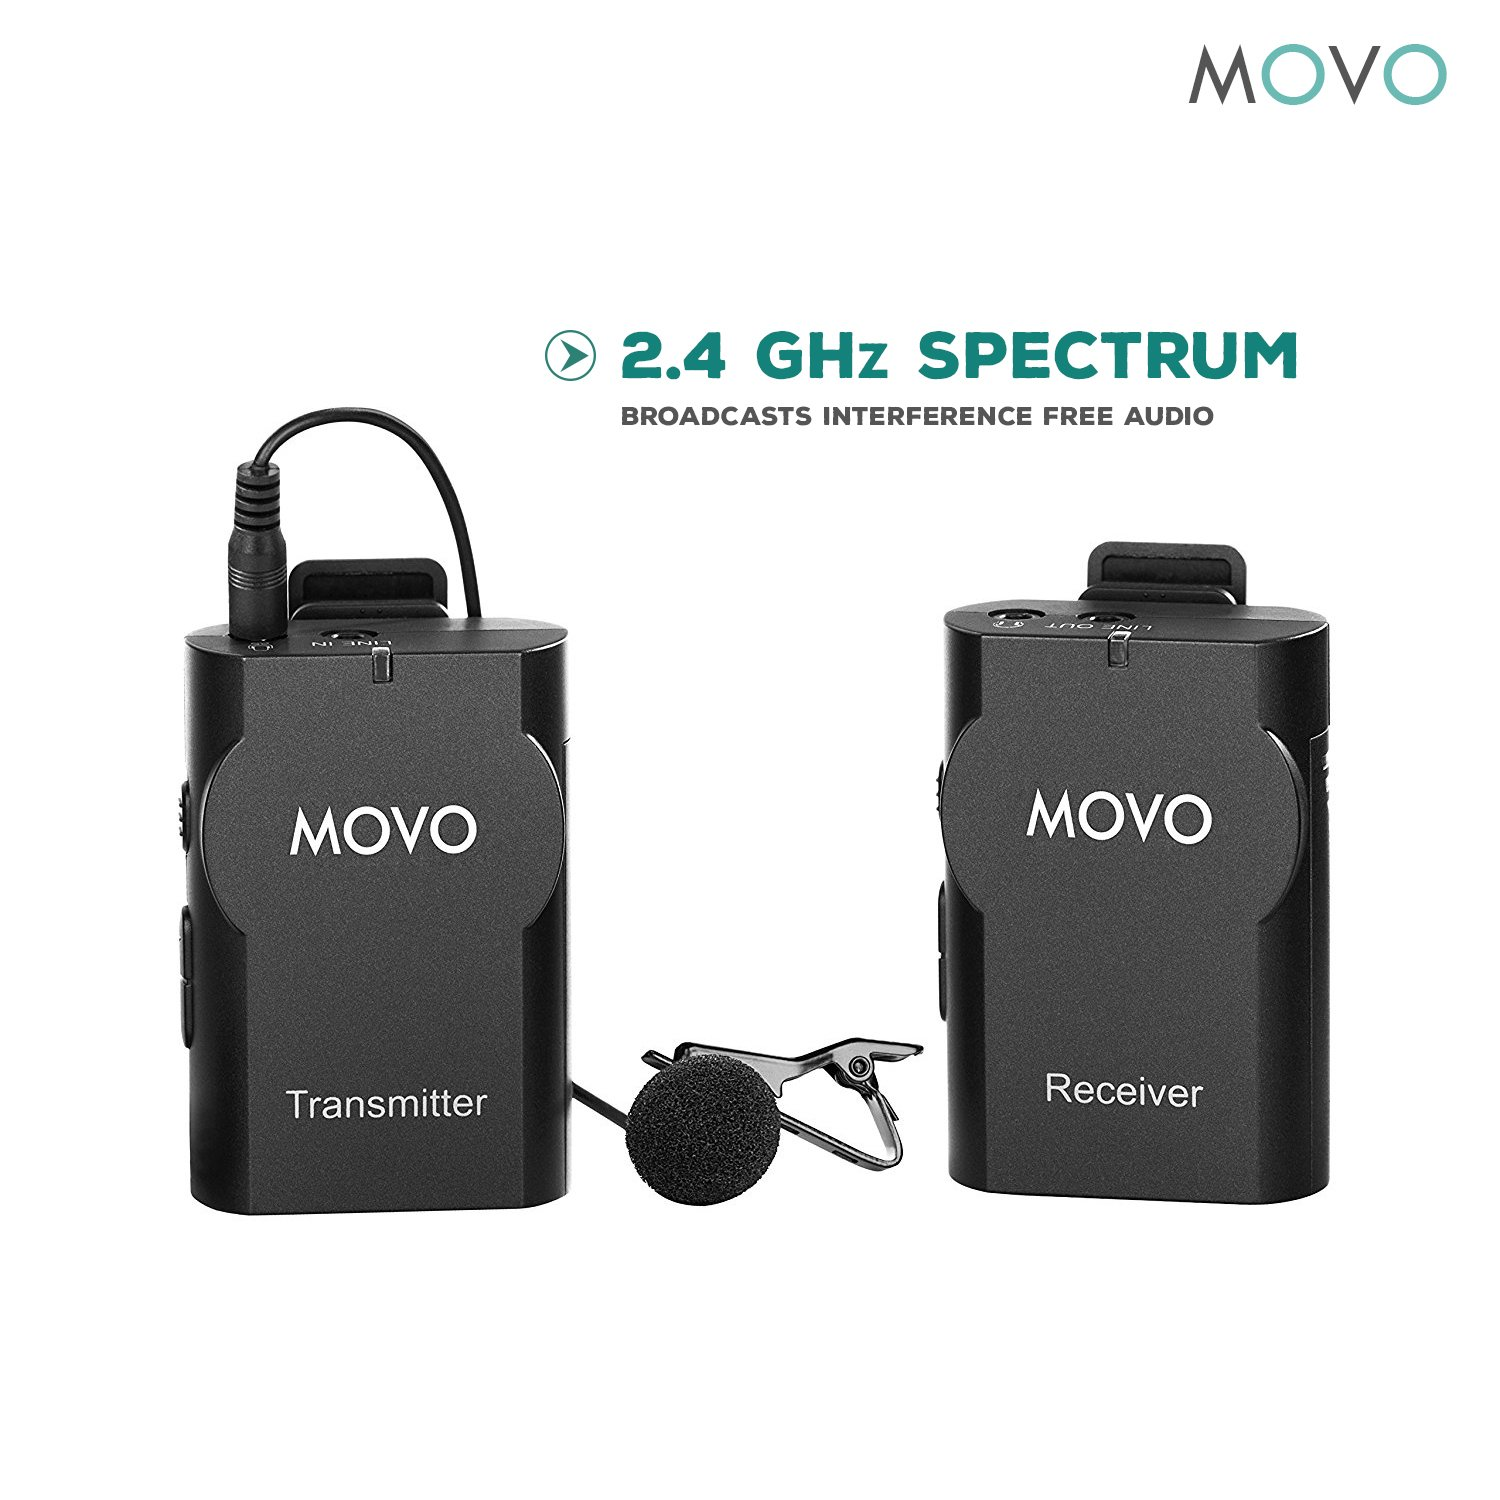 Movo WMIC10 2.4GHz Wireless Lavalier Microphone System for DSLR Cameras, iPhone/iPad/Android Smartphones, Camcorders (50-foot Transmission Range) by Movo (Image #6)